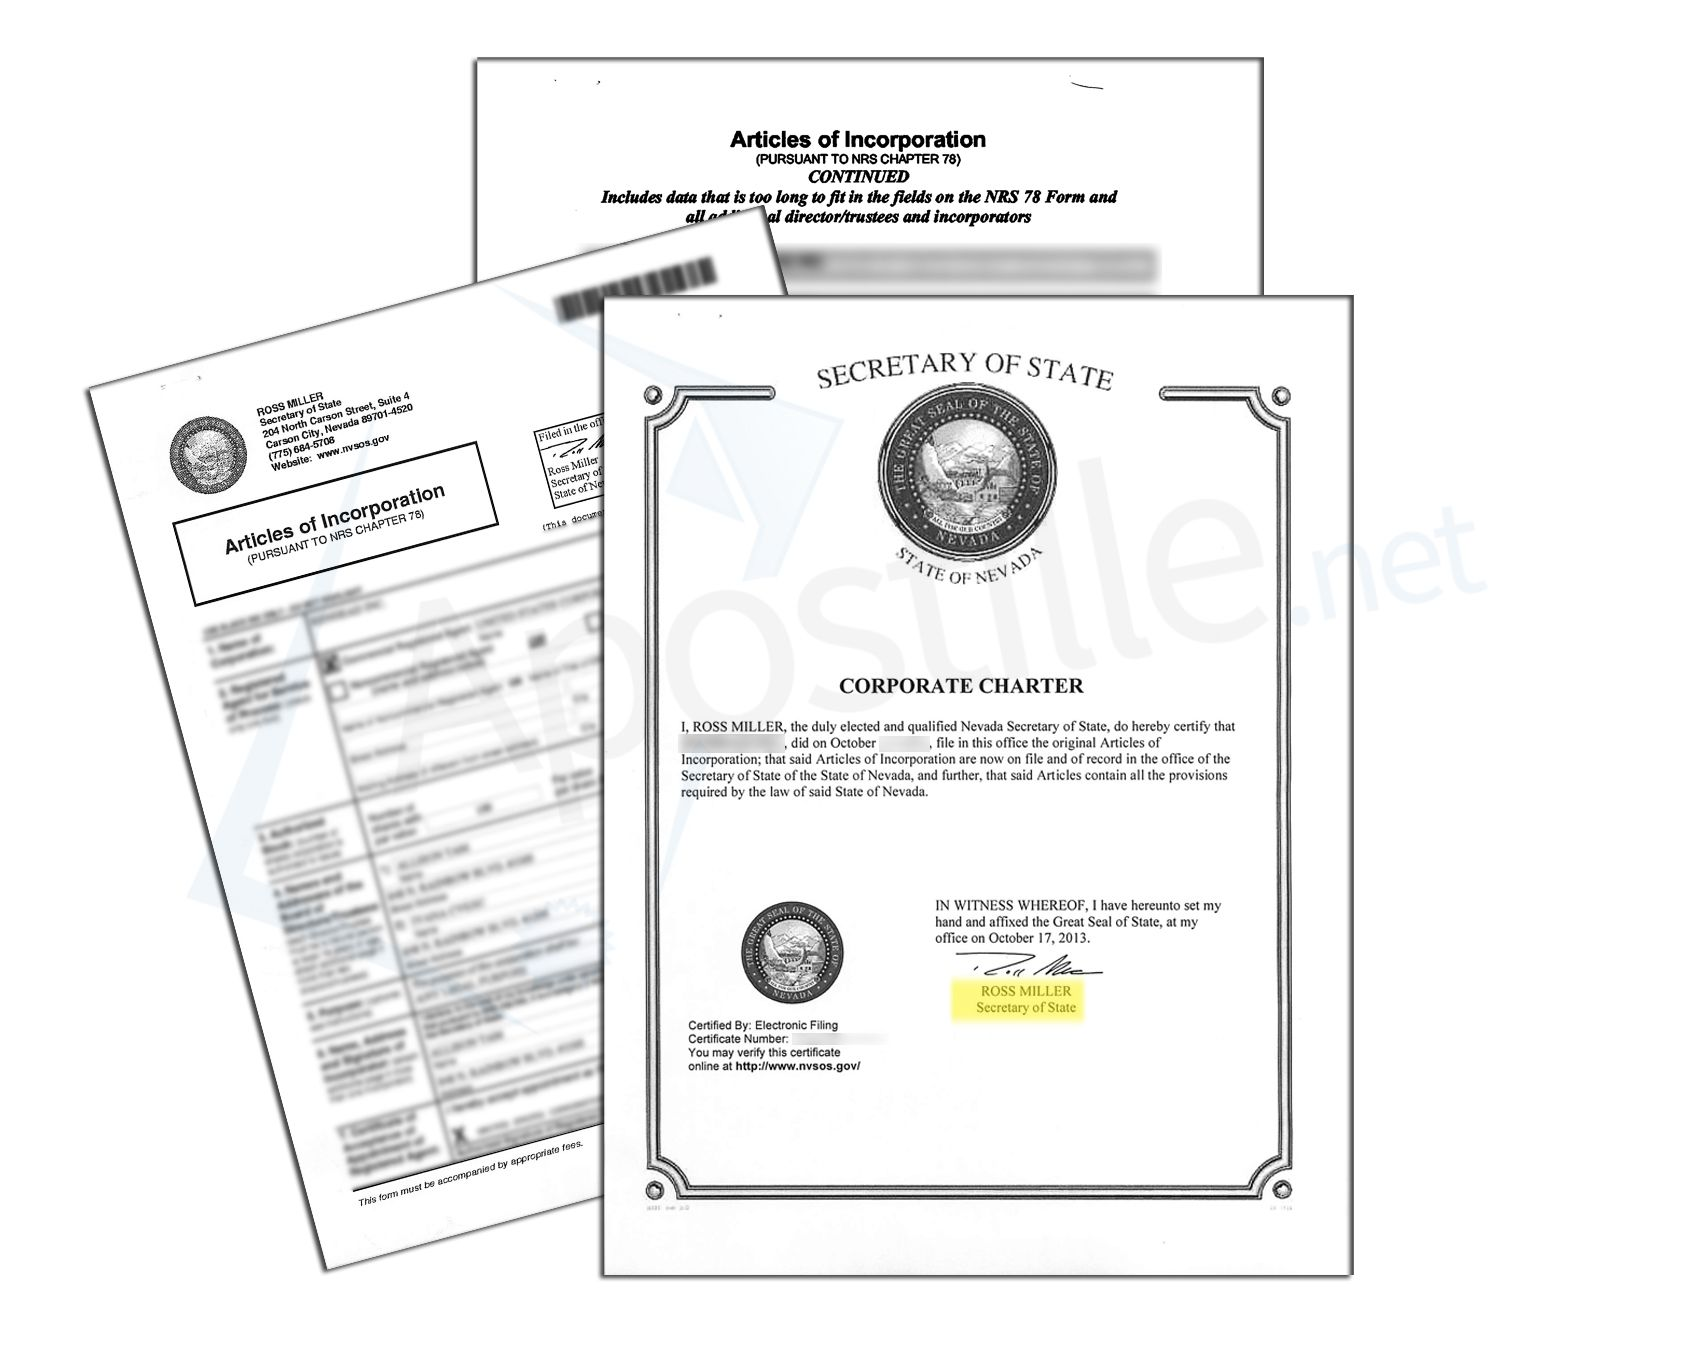 State of Nevada Corporate Charter and Articles of